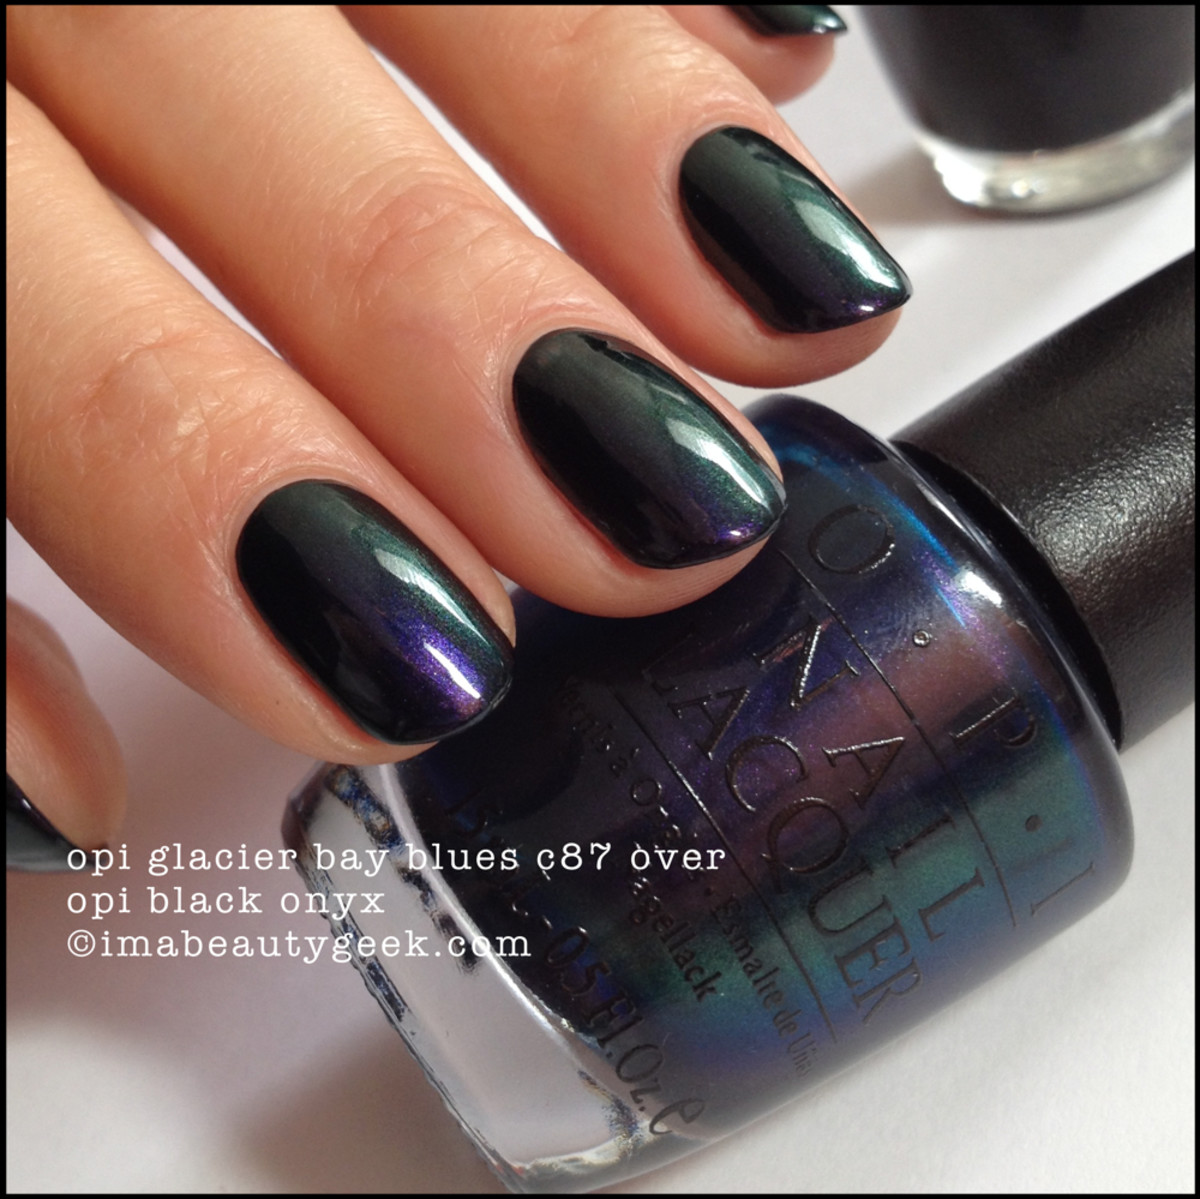 OPI Glacier Bay Blues Canadian Collection 2004 over OPI Black Onyx